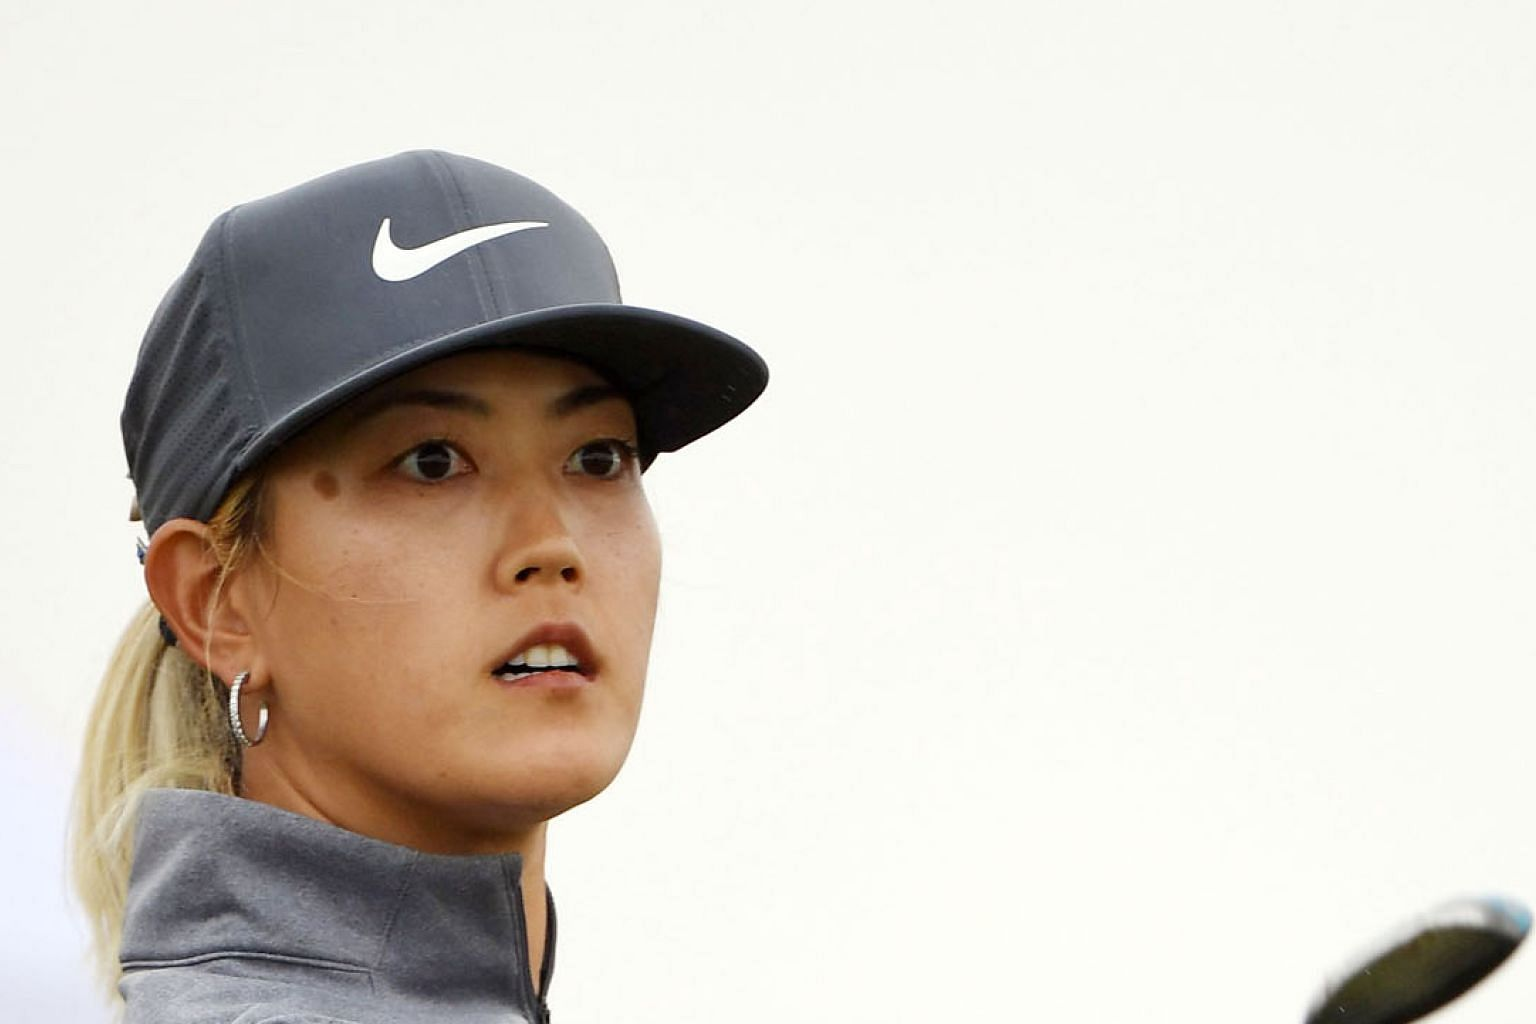 US golfer Michelle Wie is hoping her surgeon will clear her to begin hitting full shots on Feb 1 and also give her the green light to play in Thailand from Feb 21 to 24.